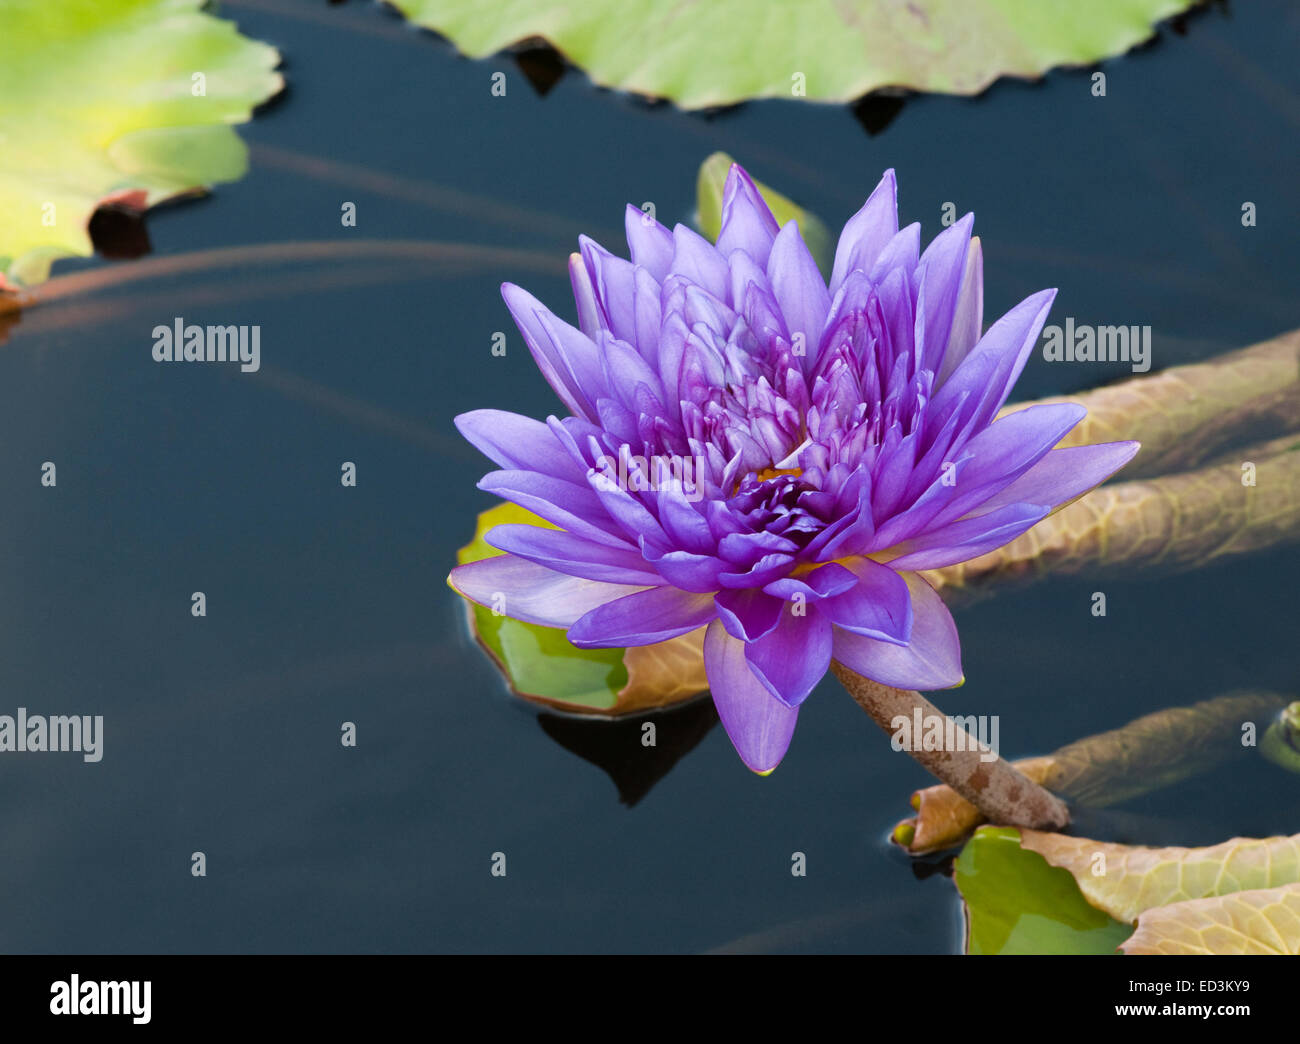 Tropical Waterlily - Nymphaea 'King of Siam' - Stock Image